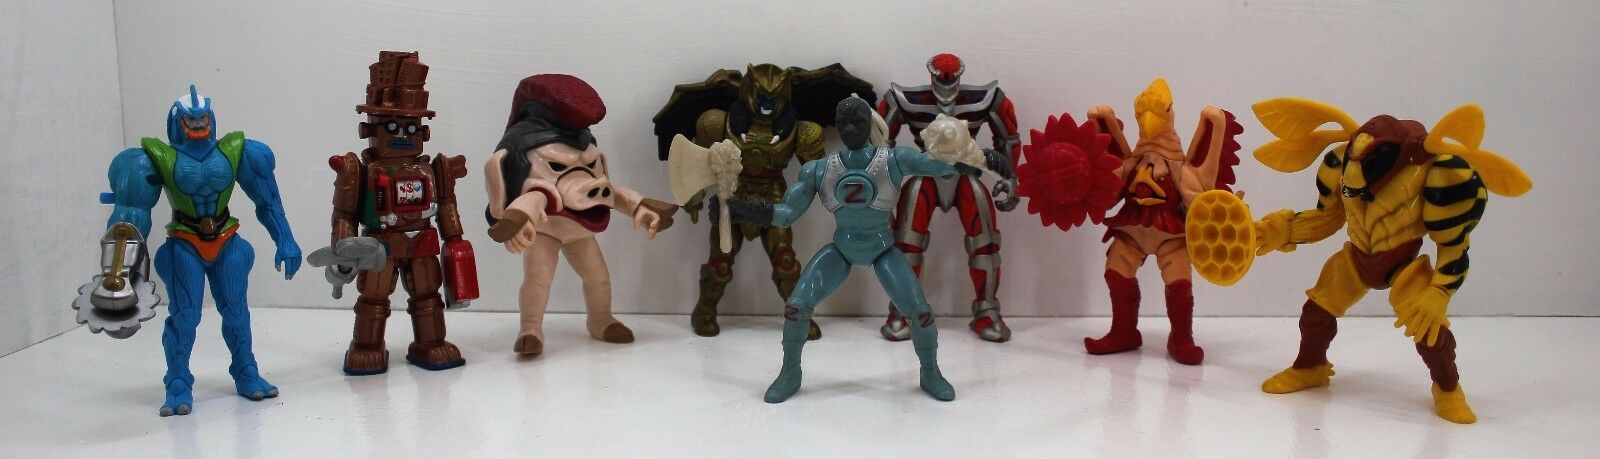 Mighty Morphin Power Rangers cattivo Collezione-Lord ZEDD, mastice, borbottare Bee